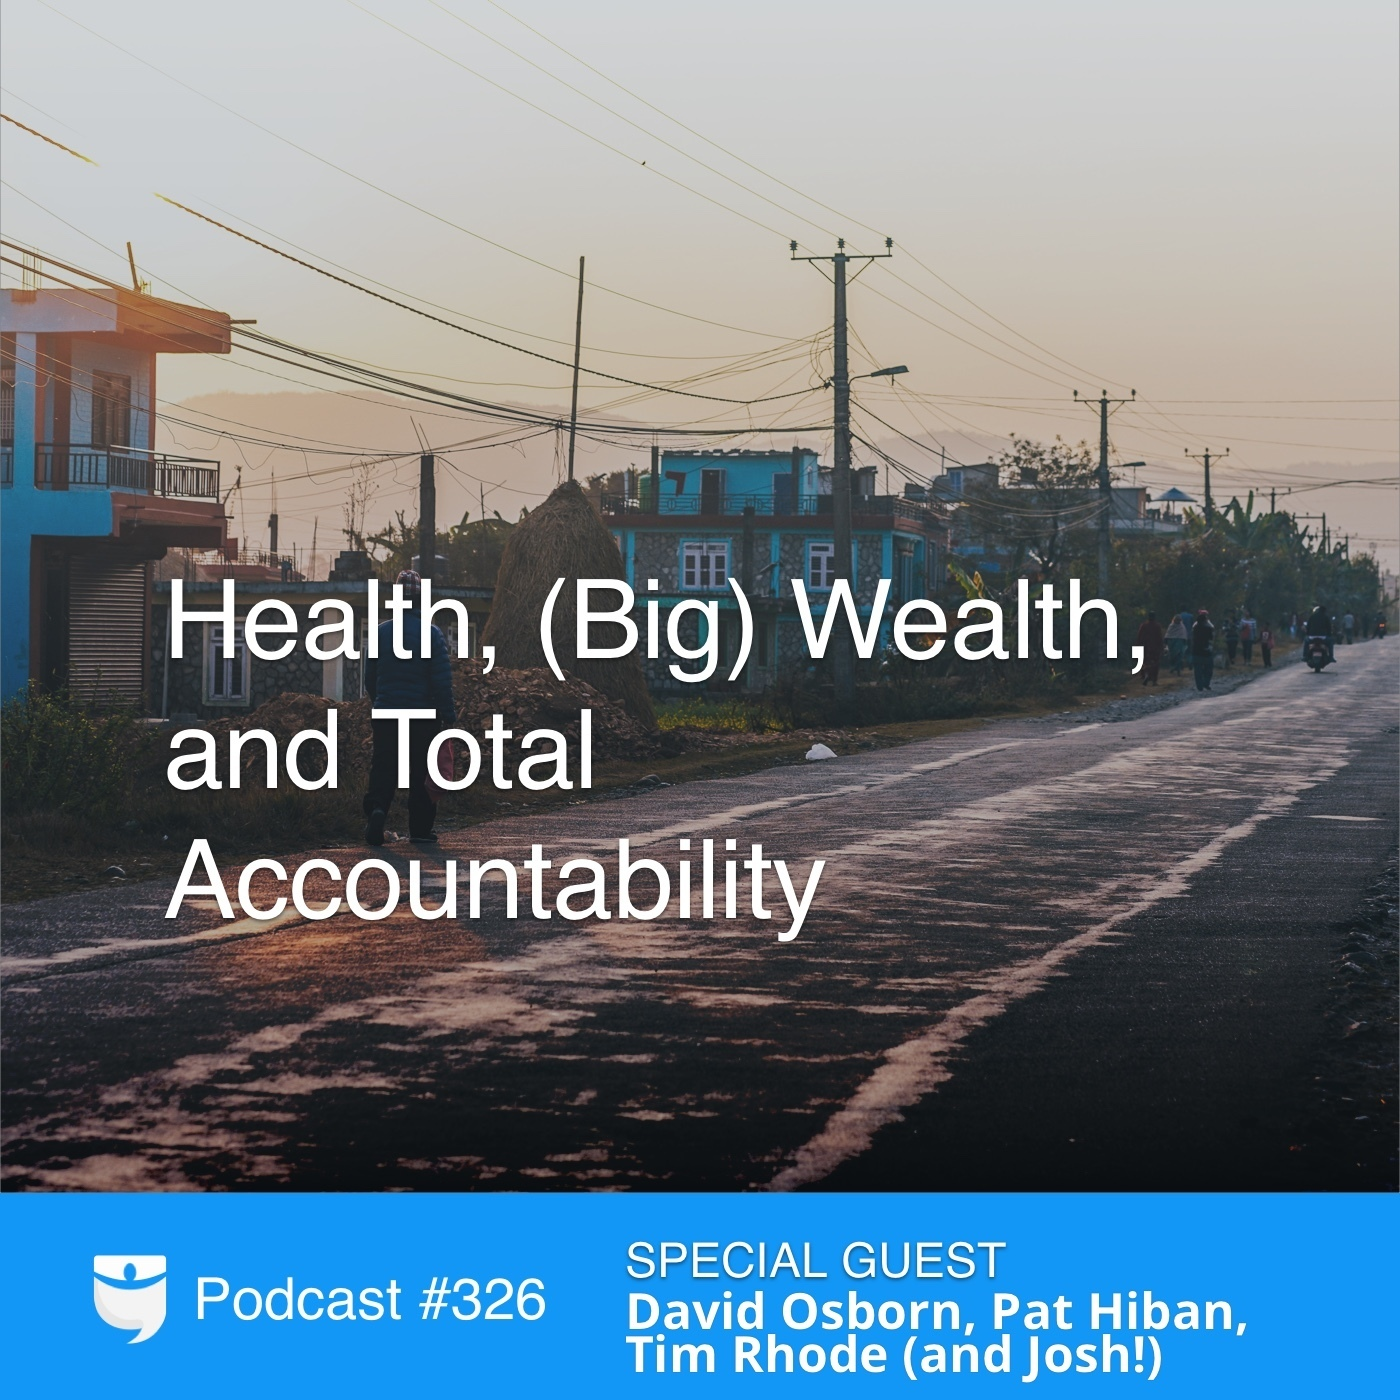 #326: Health, (Big) Wealth, and Total Accountability With David Osborn, Pat Hiban, Tim Rhode (and Josh!)